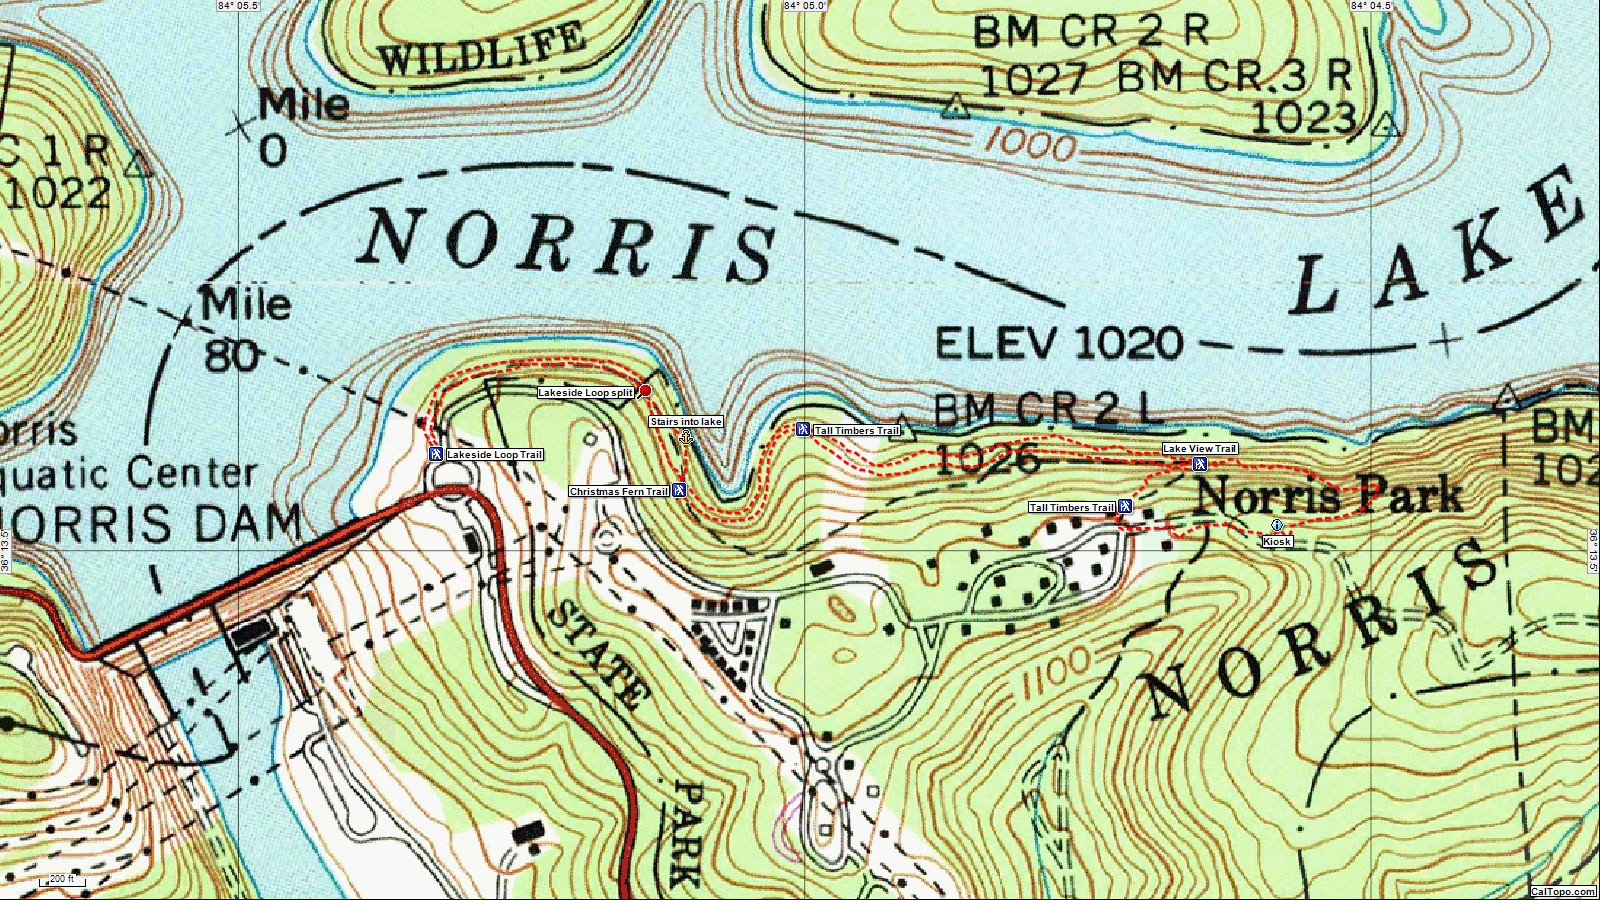 American Travel Journal East Area Hiking Norris Dam State Park